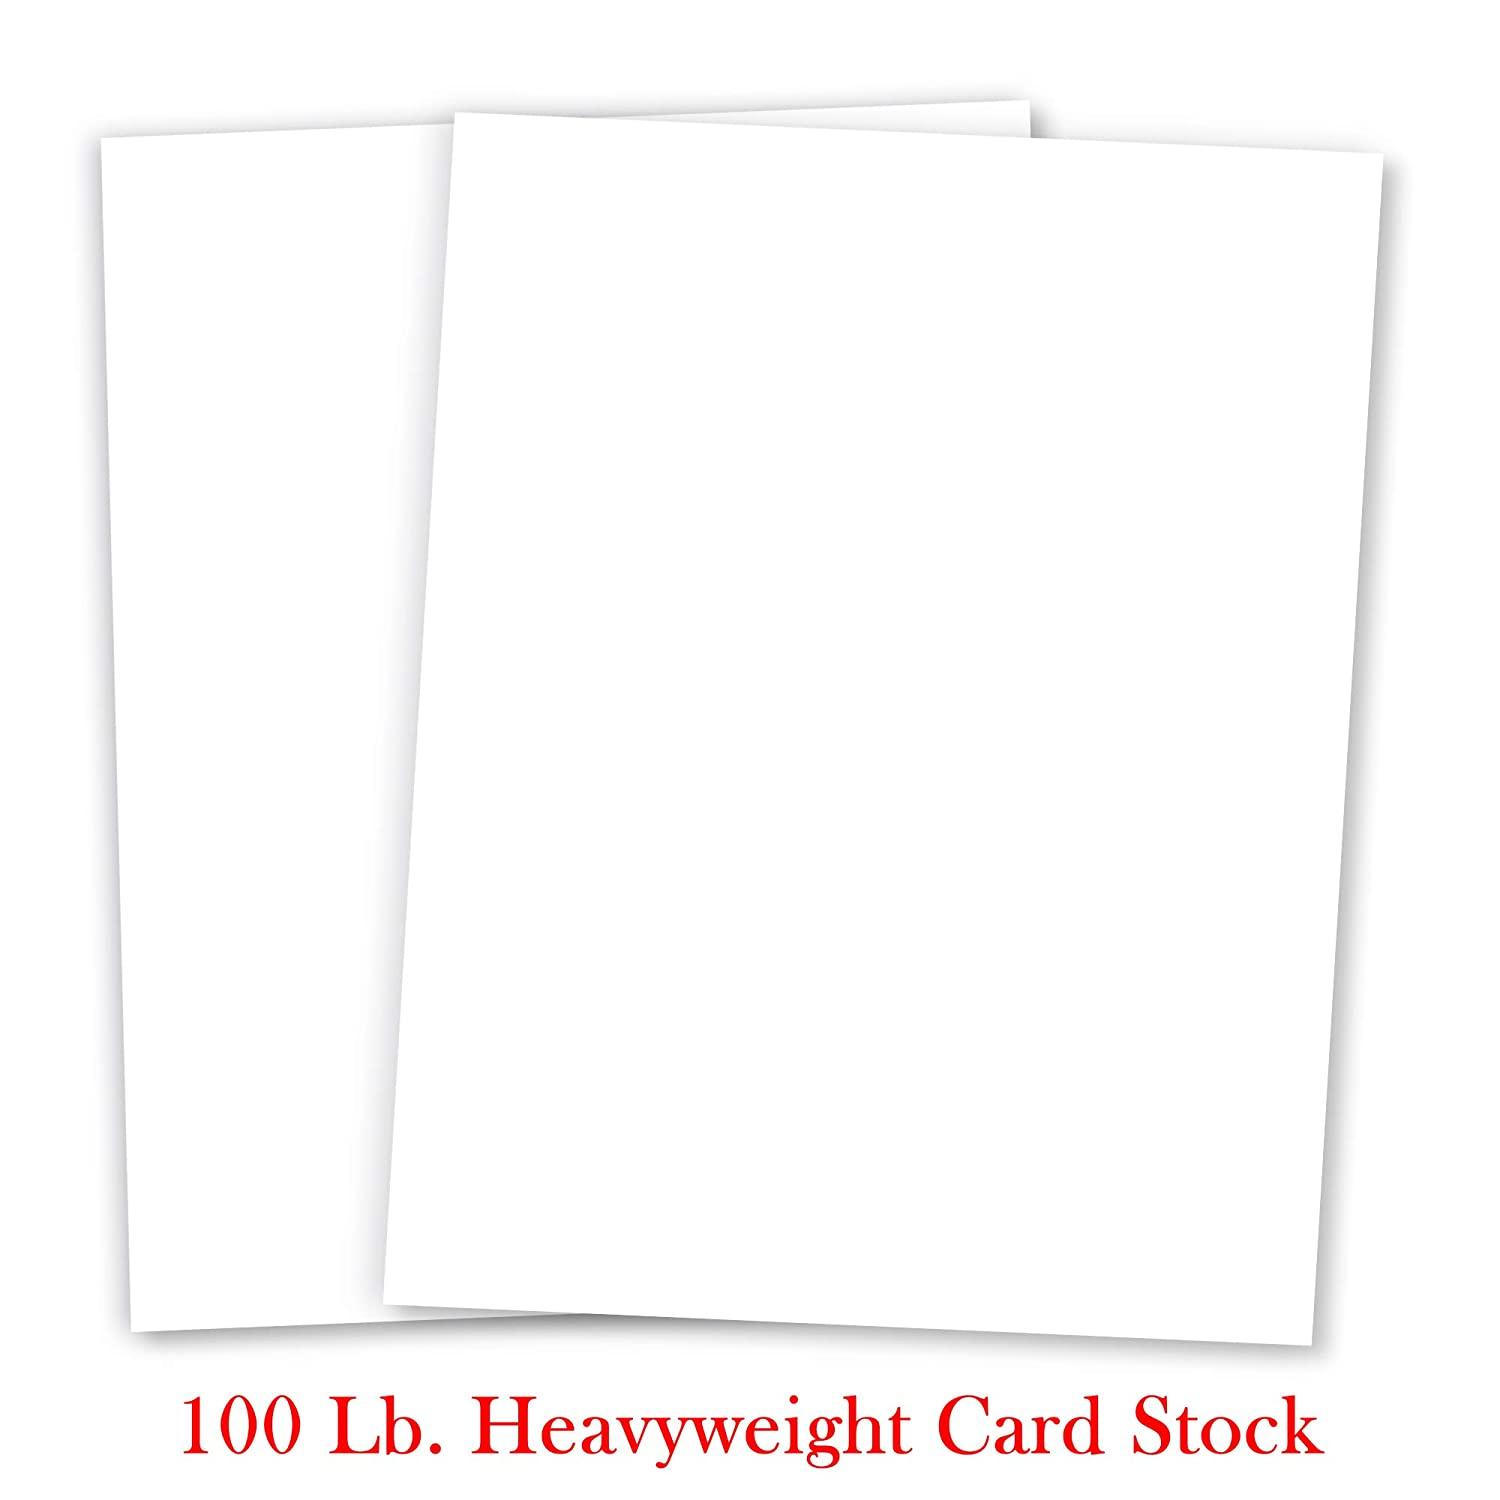 Basic WHITE Card Stock Paper - 8.5 x 11 - 100lb Cover (270gsm) - 50 PK by Superfine Printing Inc. 29784